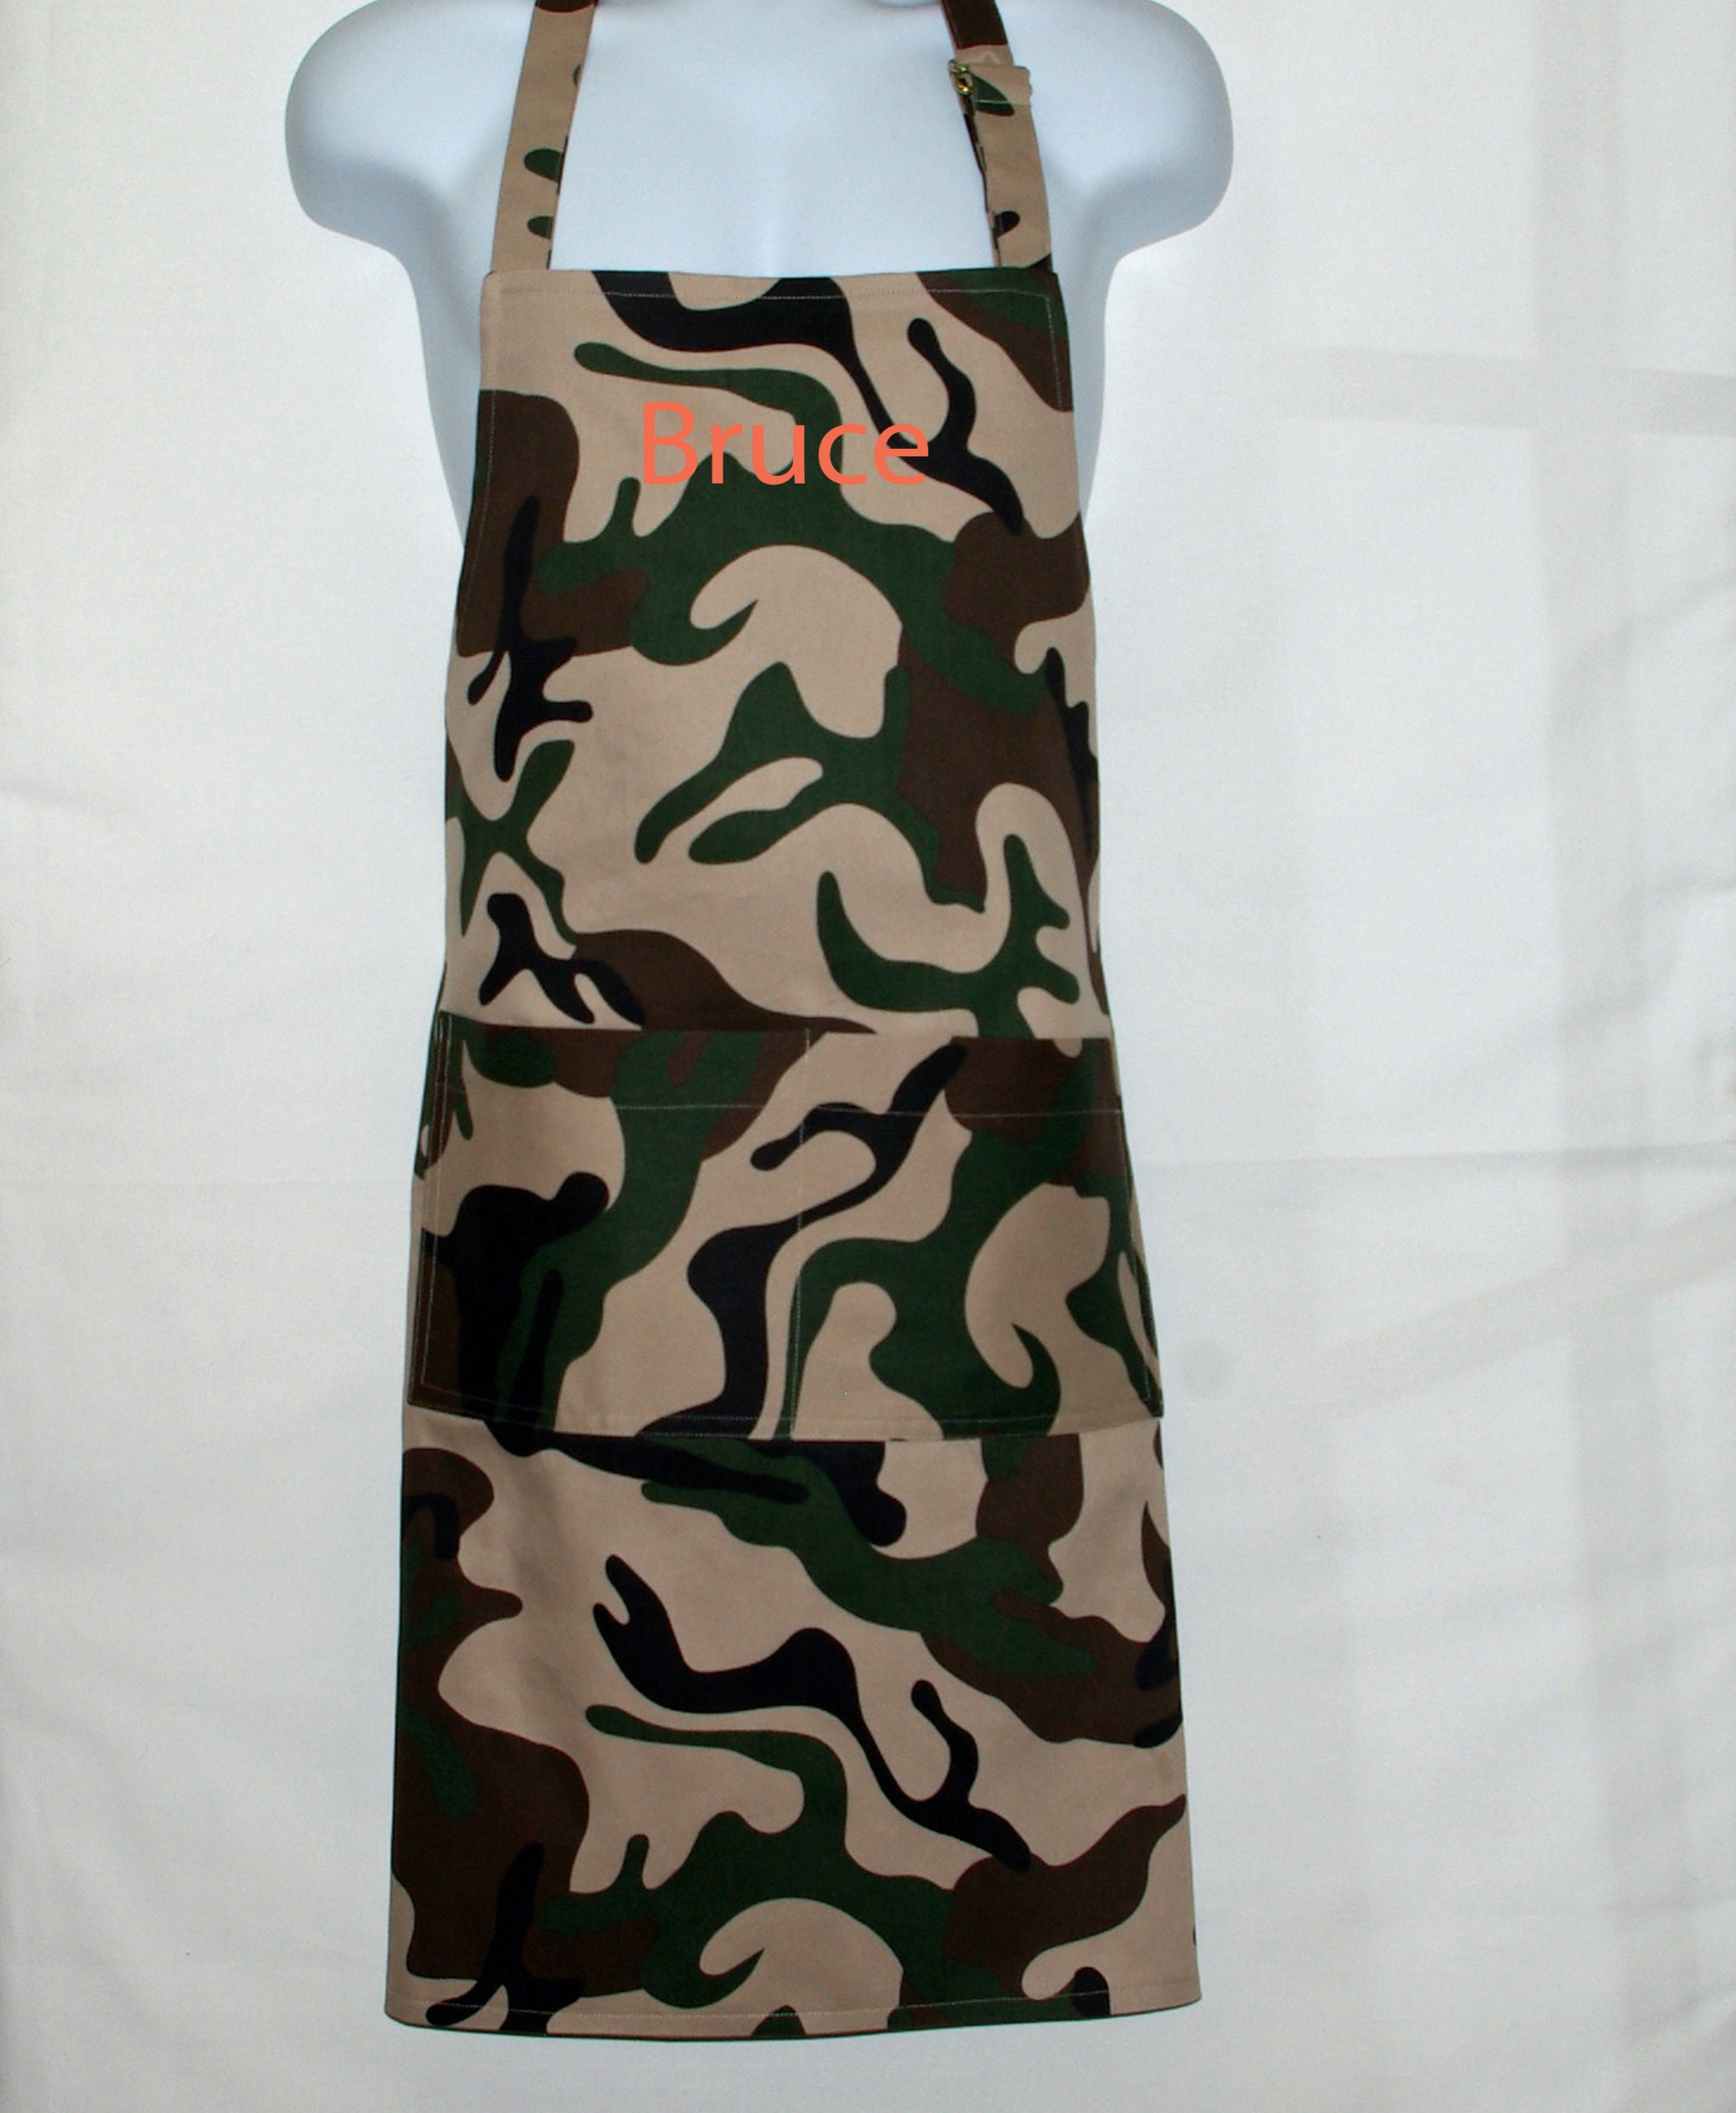 Camouflage Camo Apron Men BBQ Grill Tailgate Dad Military